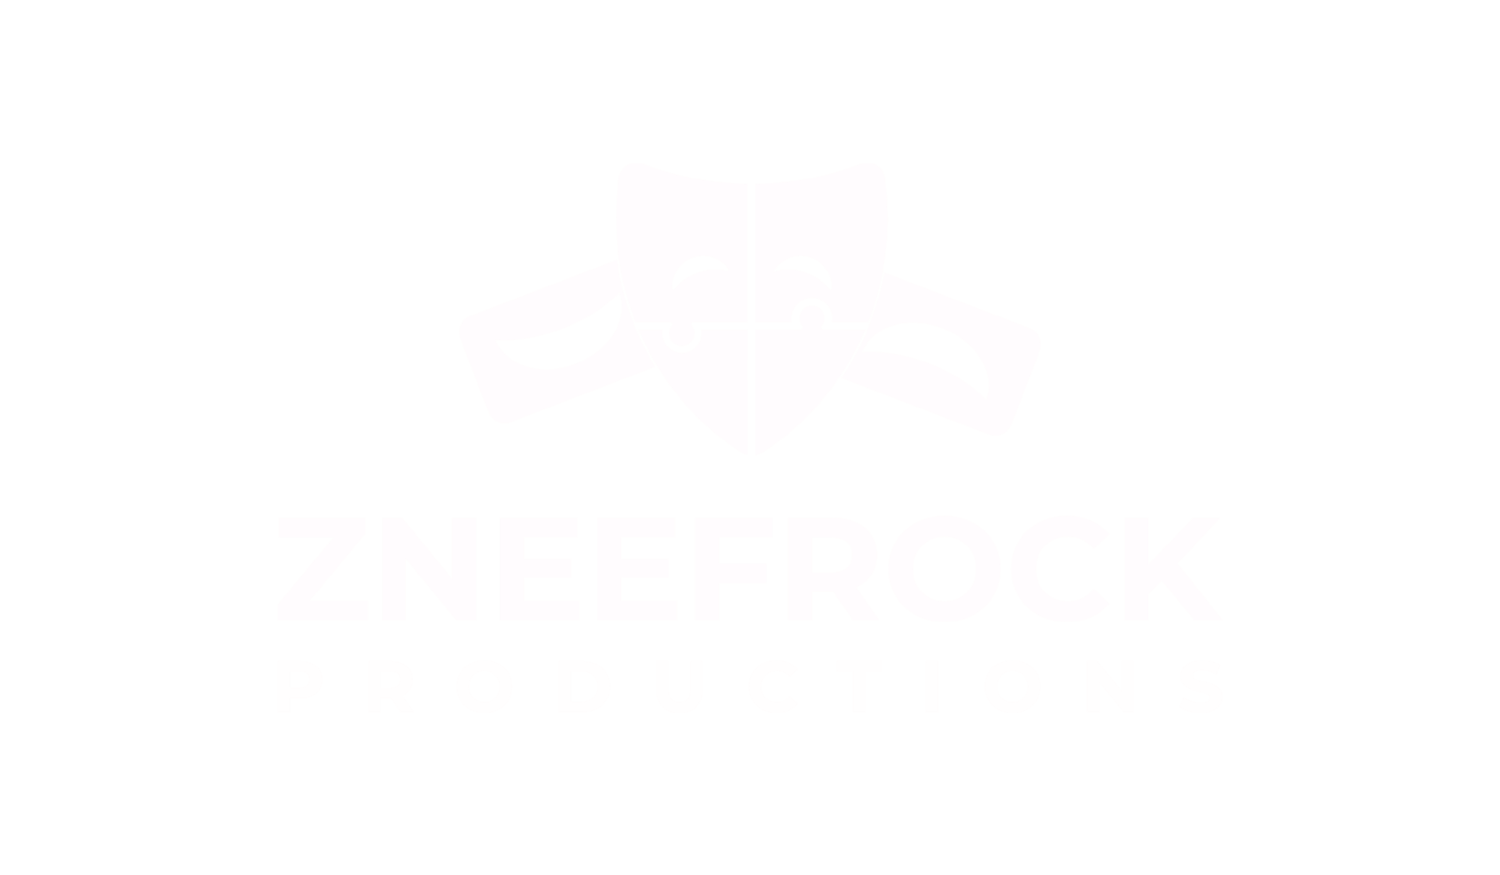 Zneefrock Productions